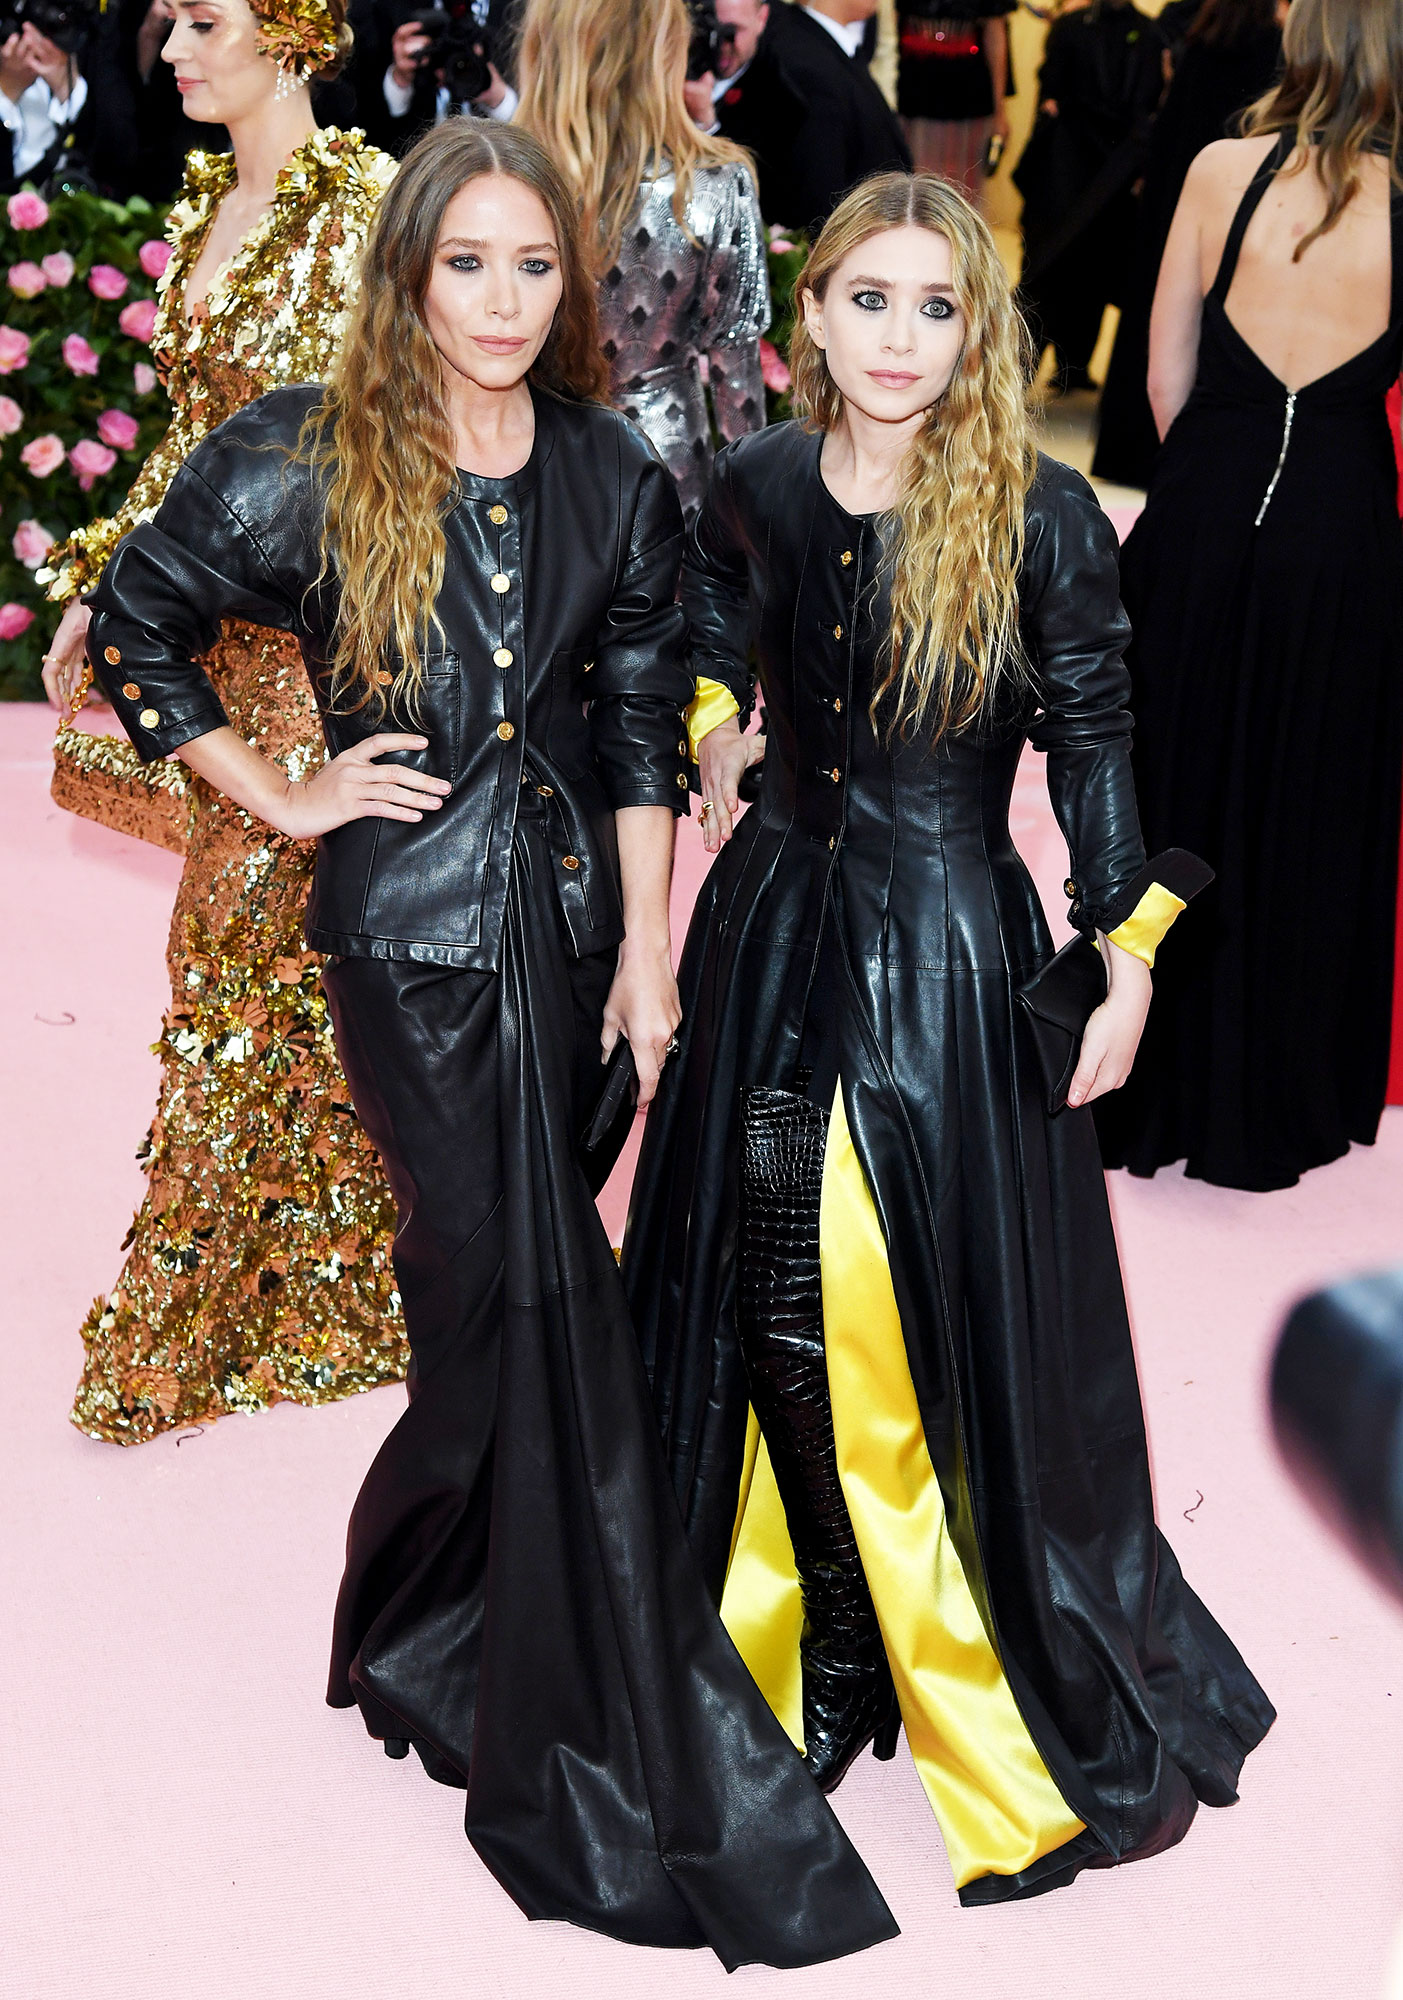 Ashley Olsen and Mary-Kate Olsen met gala 2019 couples - The sisters coordinated in vintage Chanel ensembles.